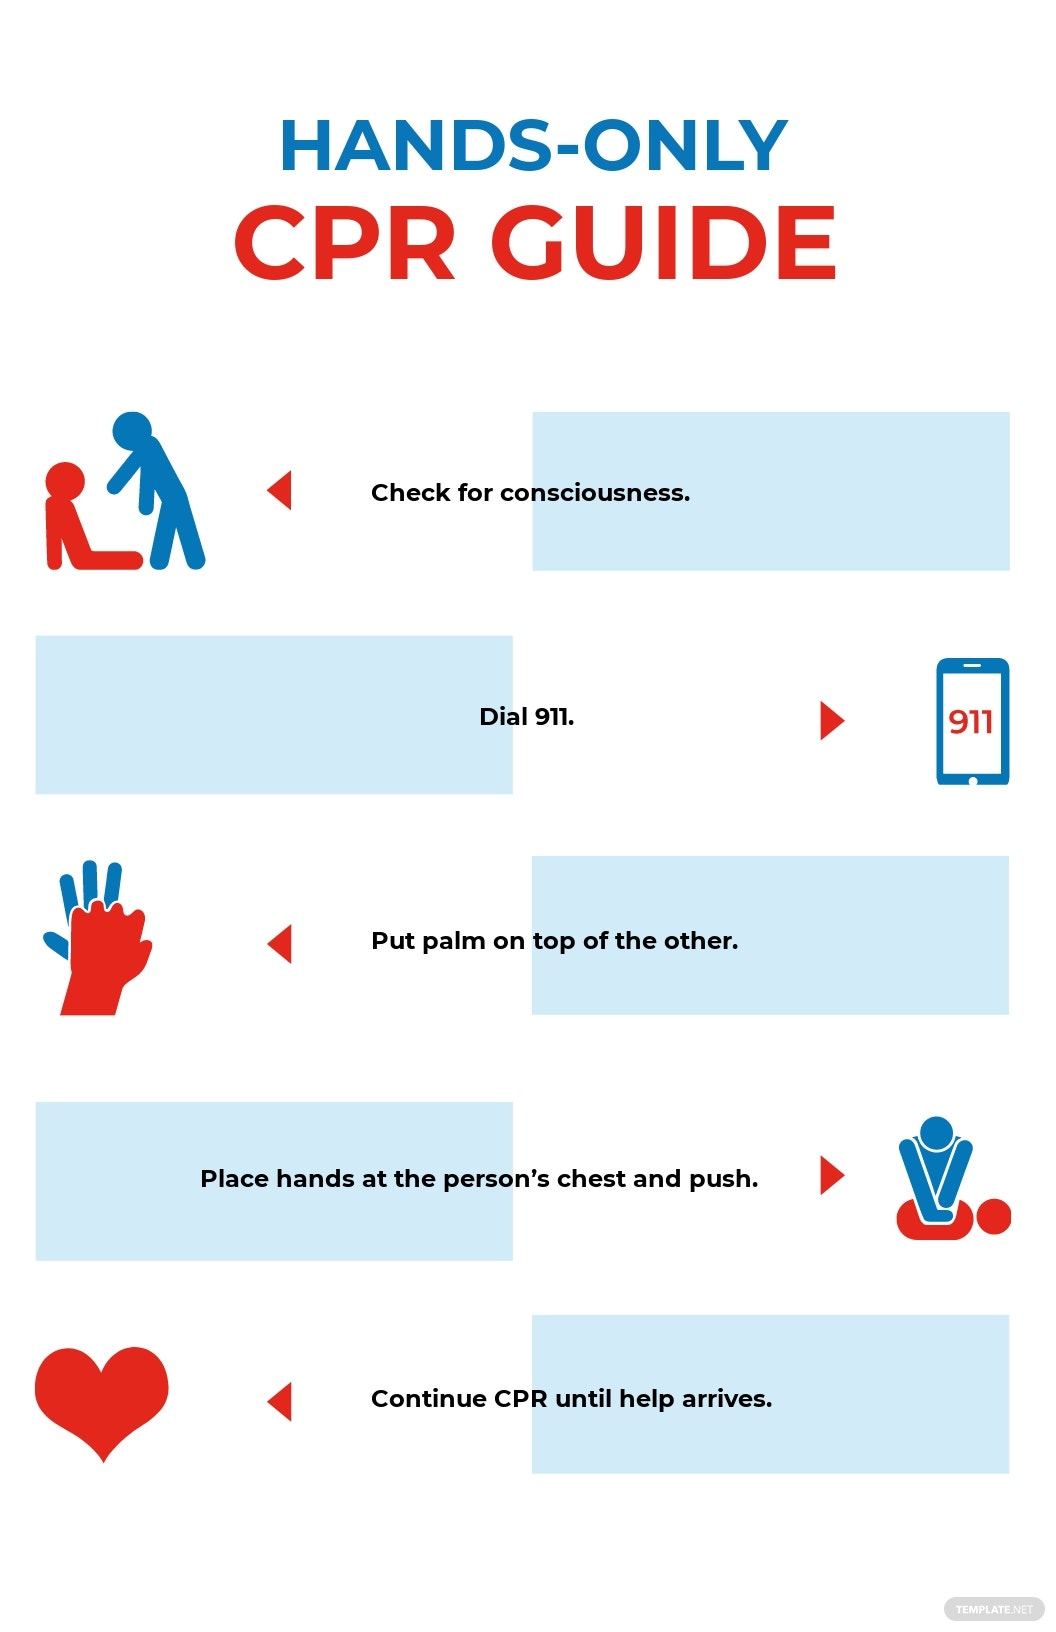 Hands Only CPR Poster Template [Free JPG] - Illustrator, InDesign, Word, Apple Pages